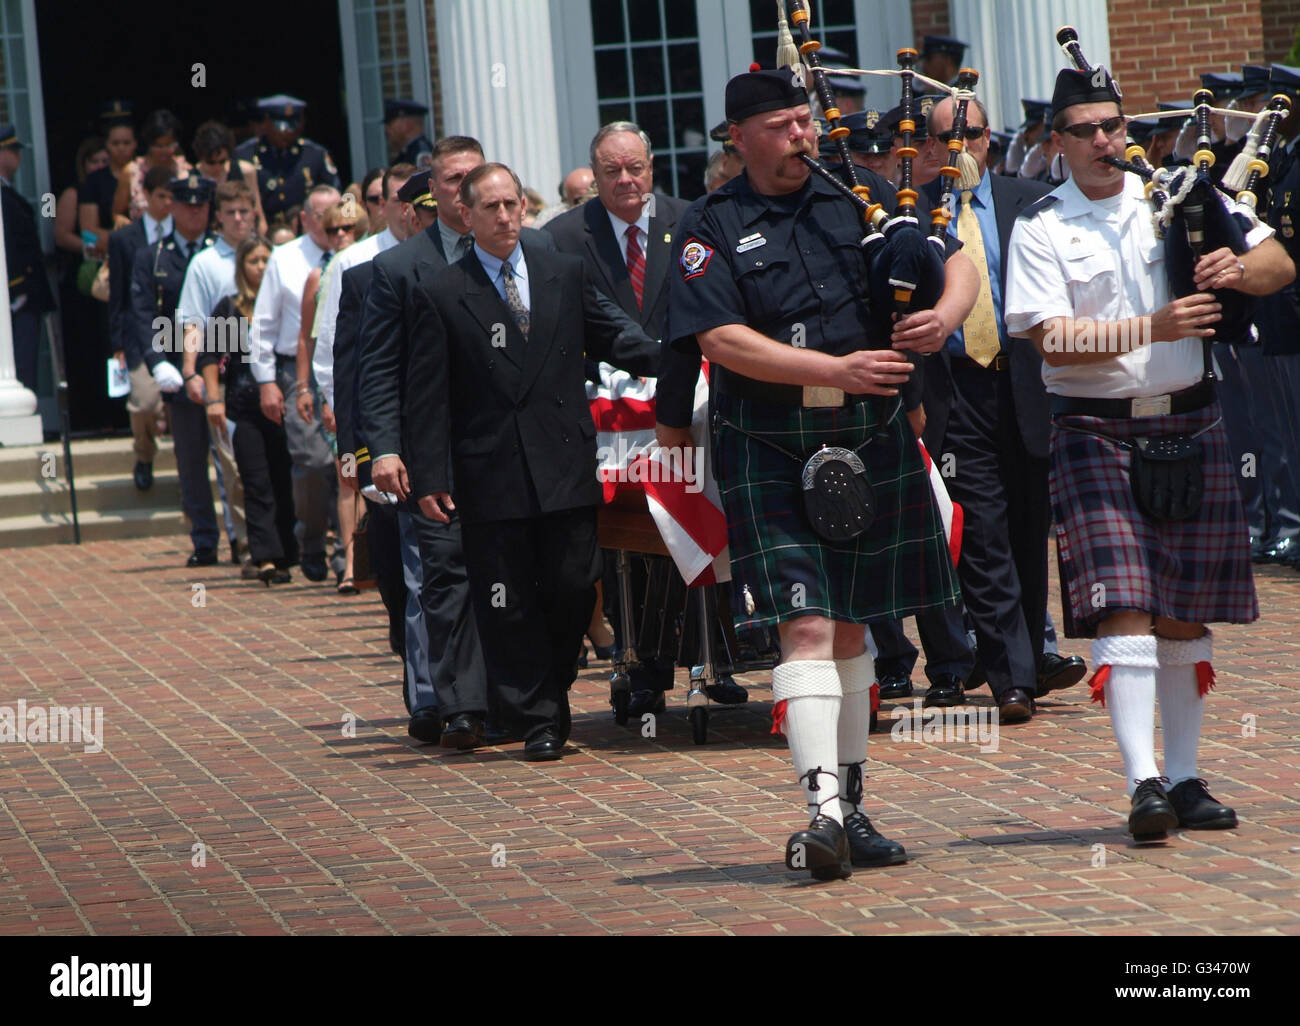 casket is escorted by bagpipers at funeral for police officer killed in shootout -Largo, Md - Stock Image